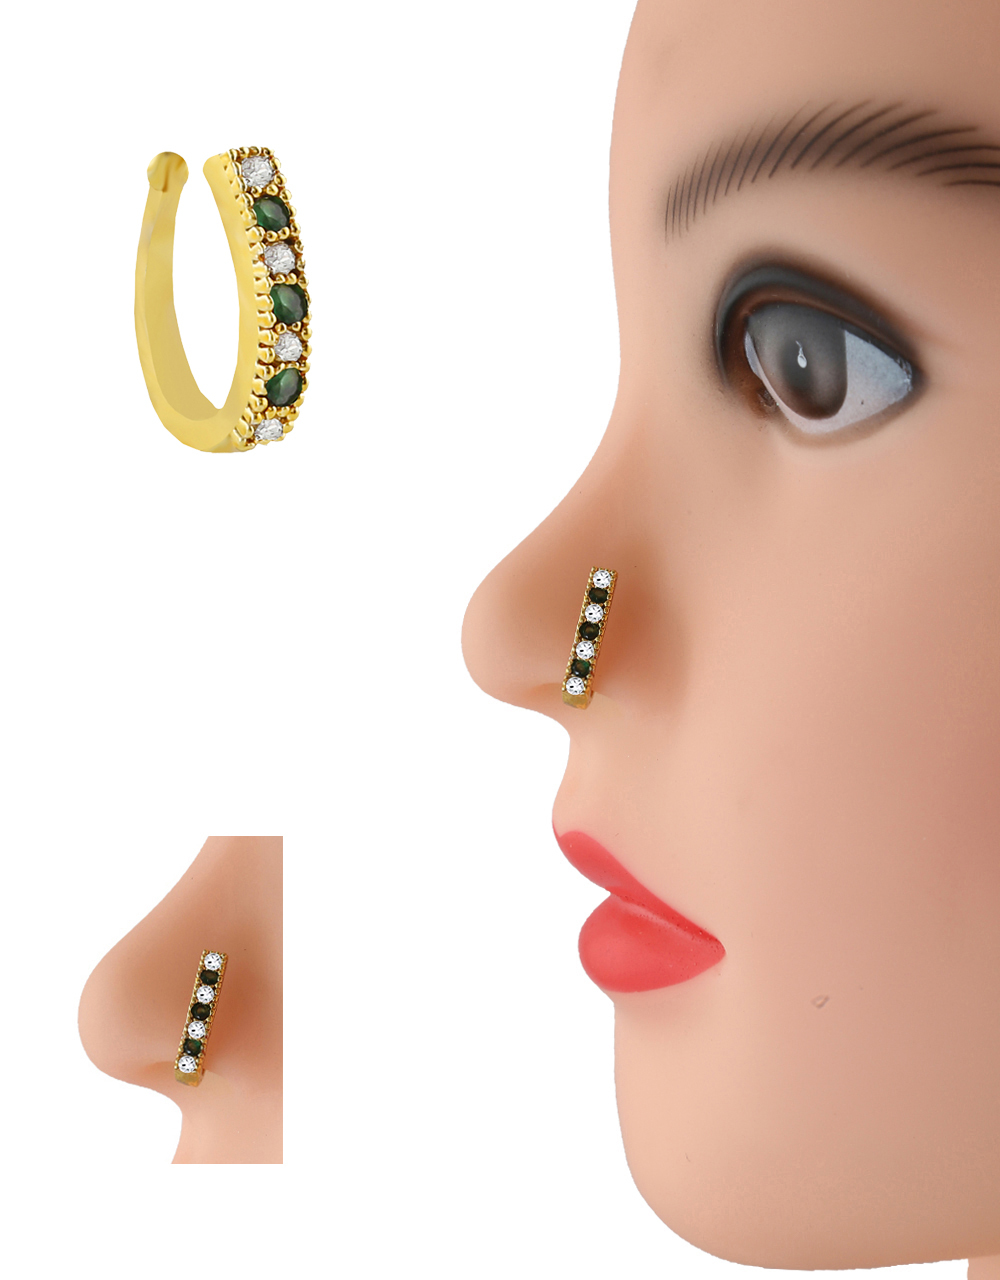 Green Colour Gold Finish Diamond Nose Stud Ring